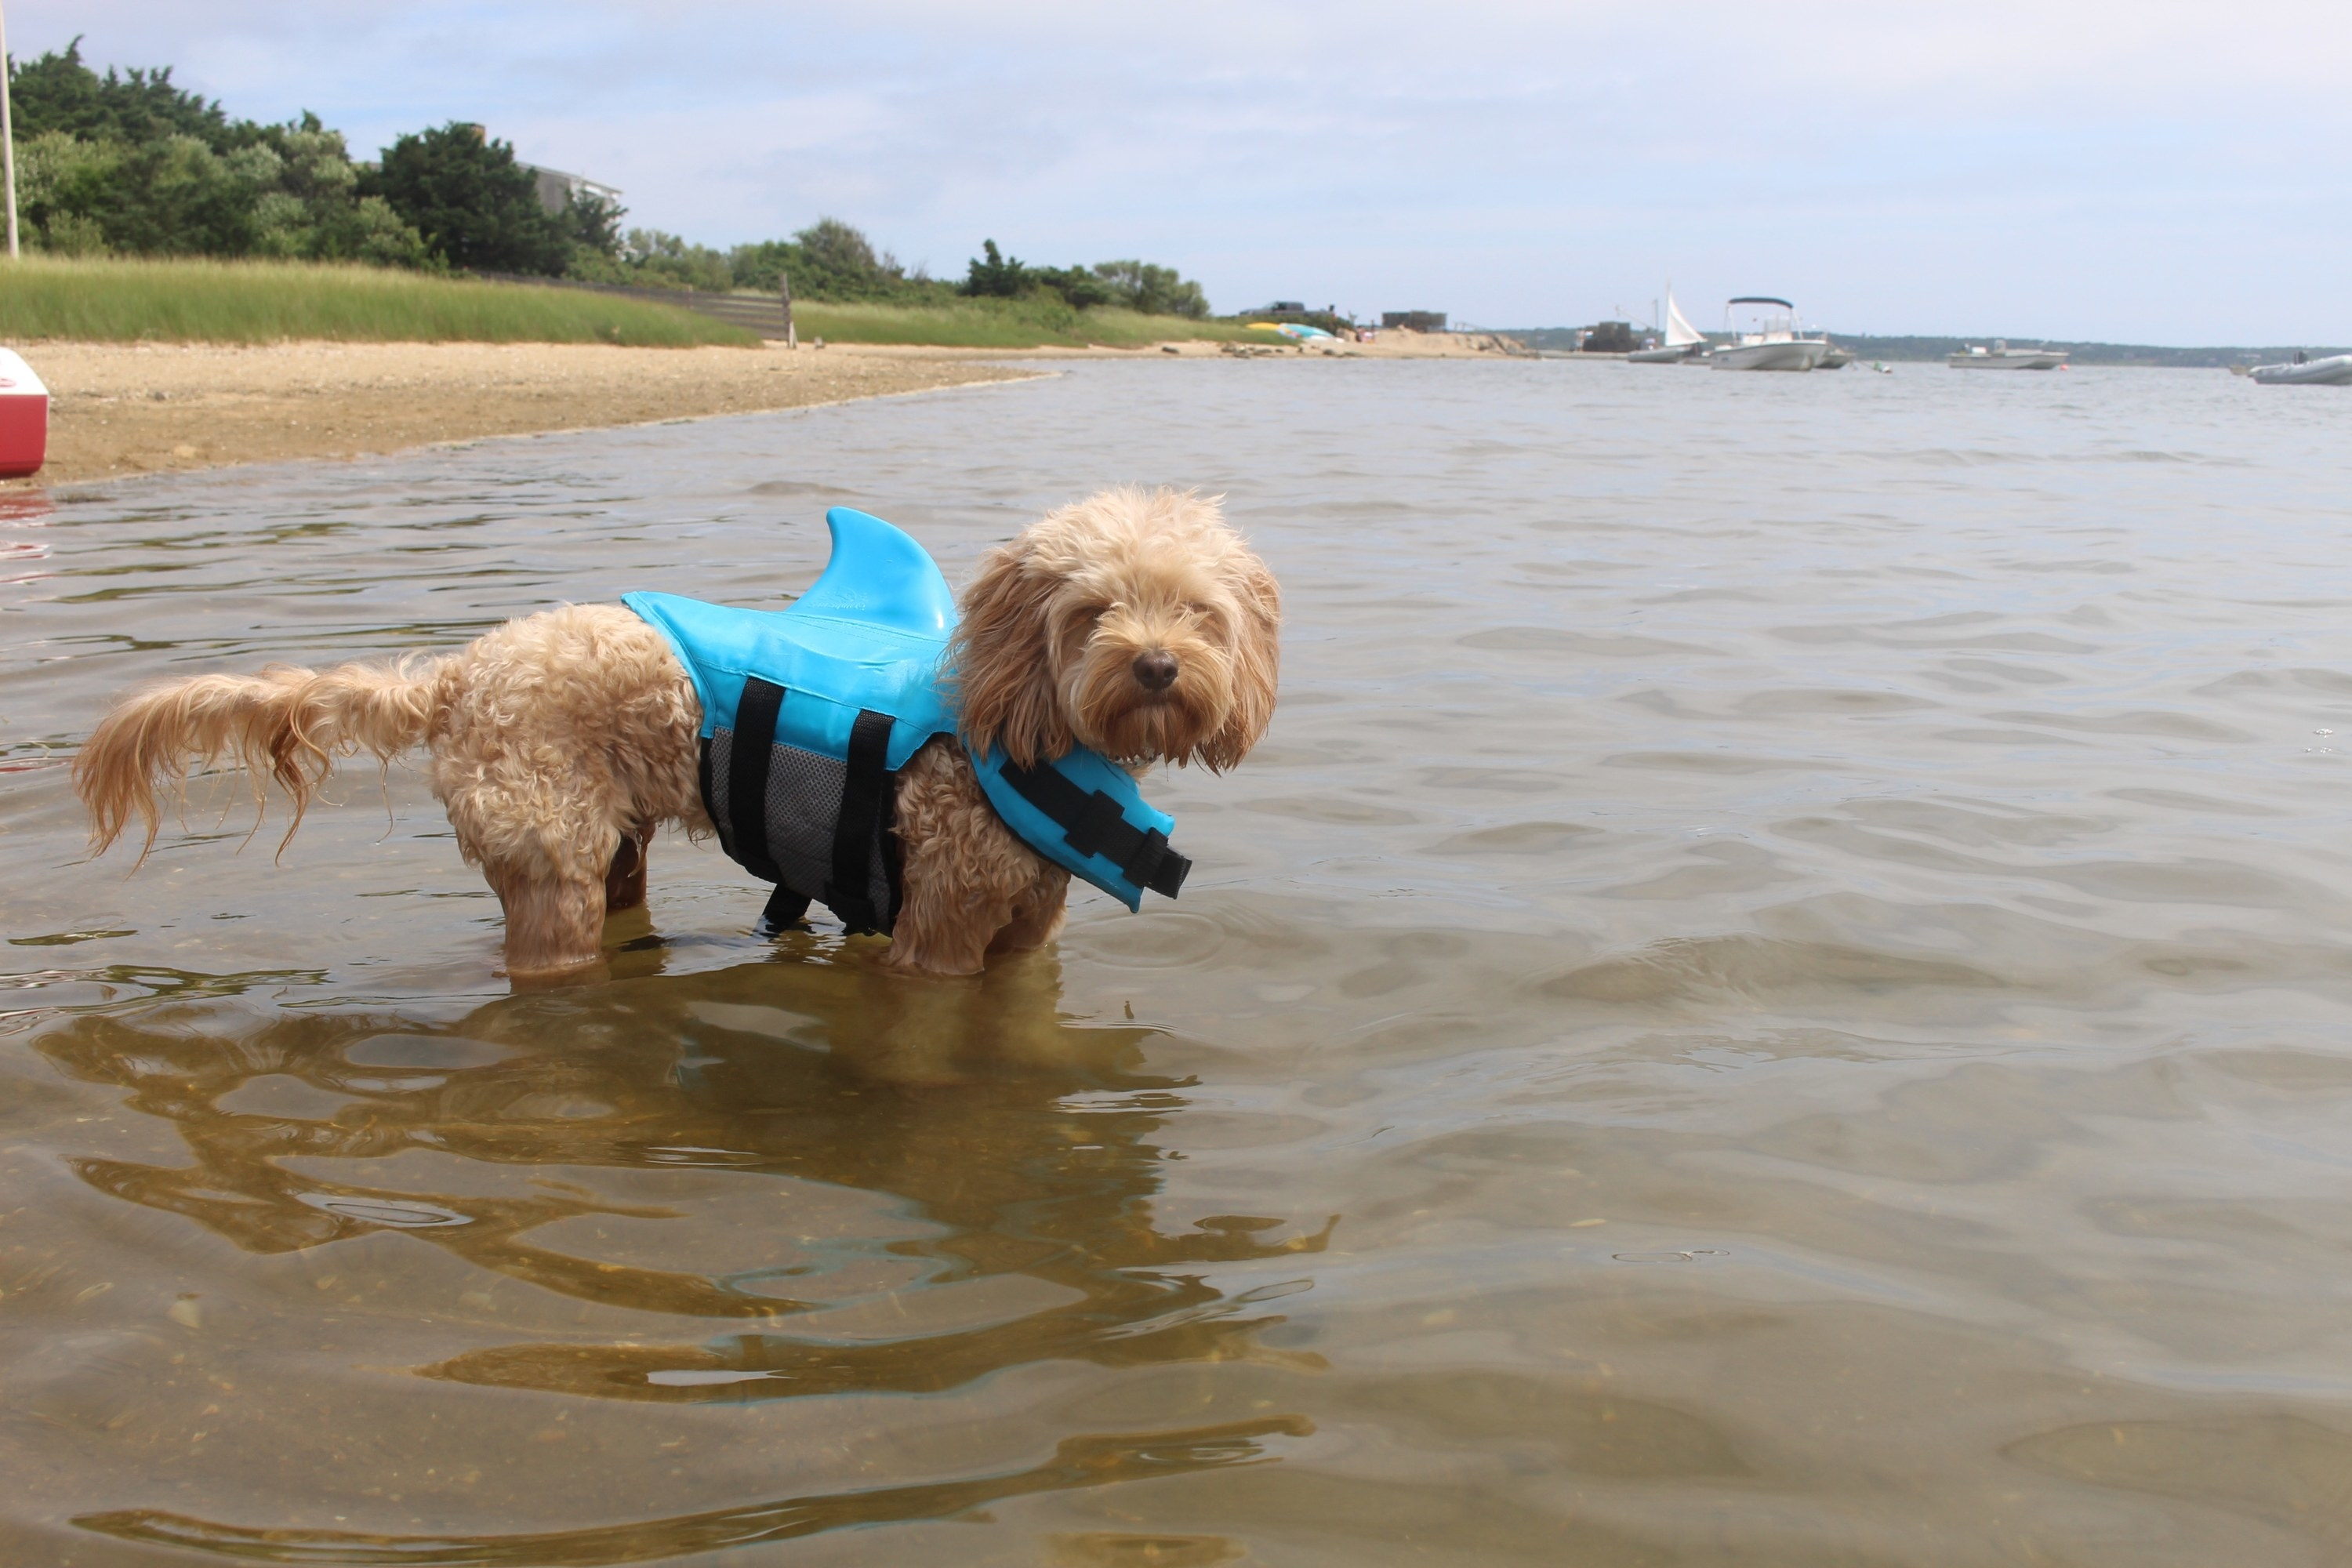 Hudson swimming in a bay with his blue shark life vest on.